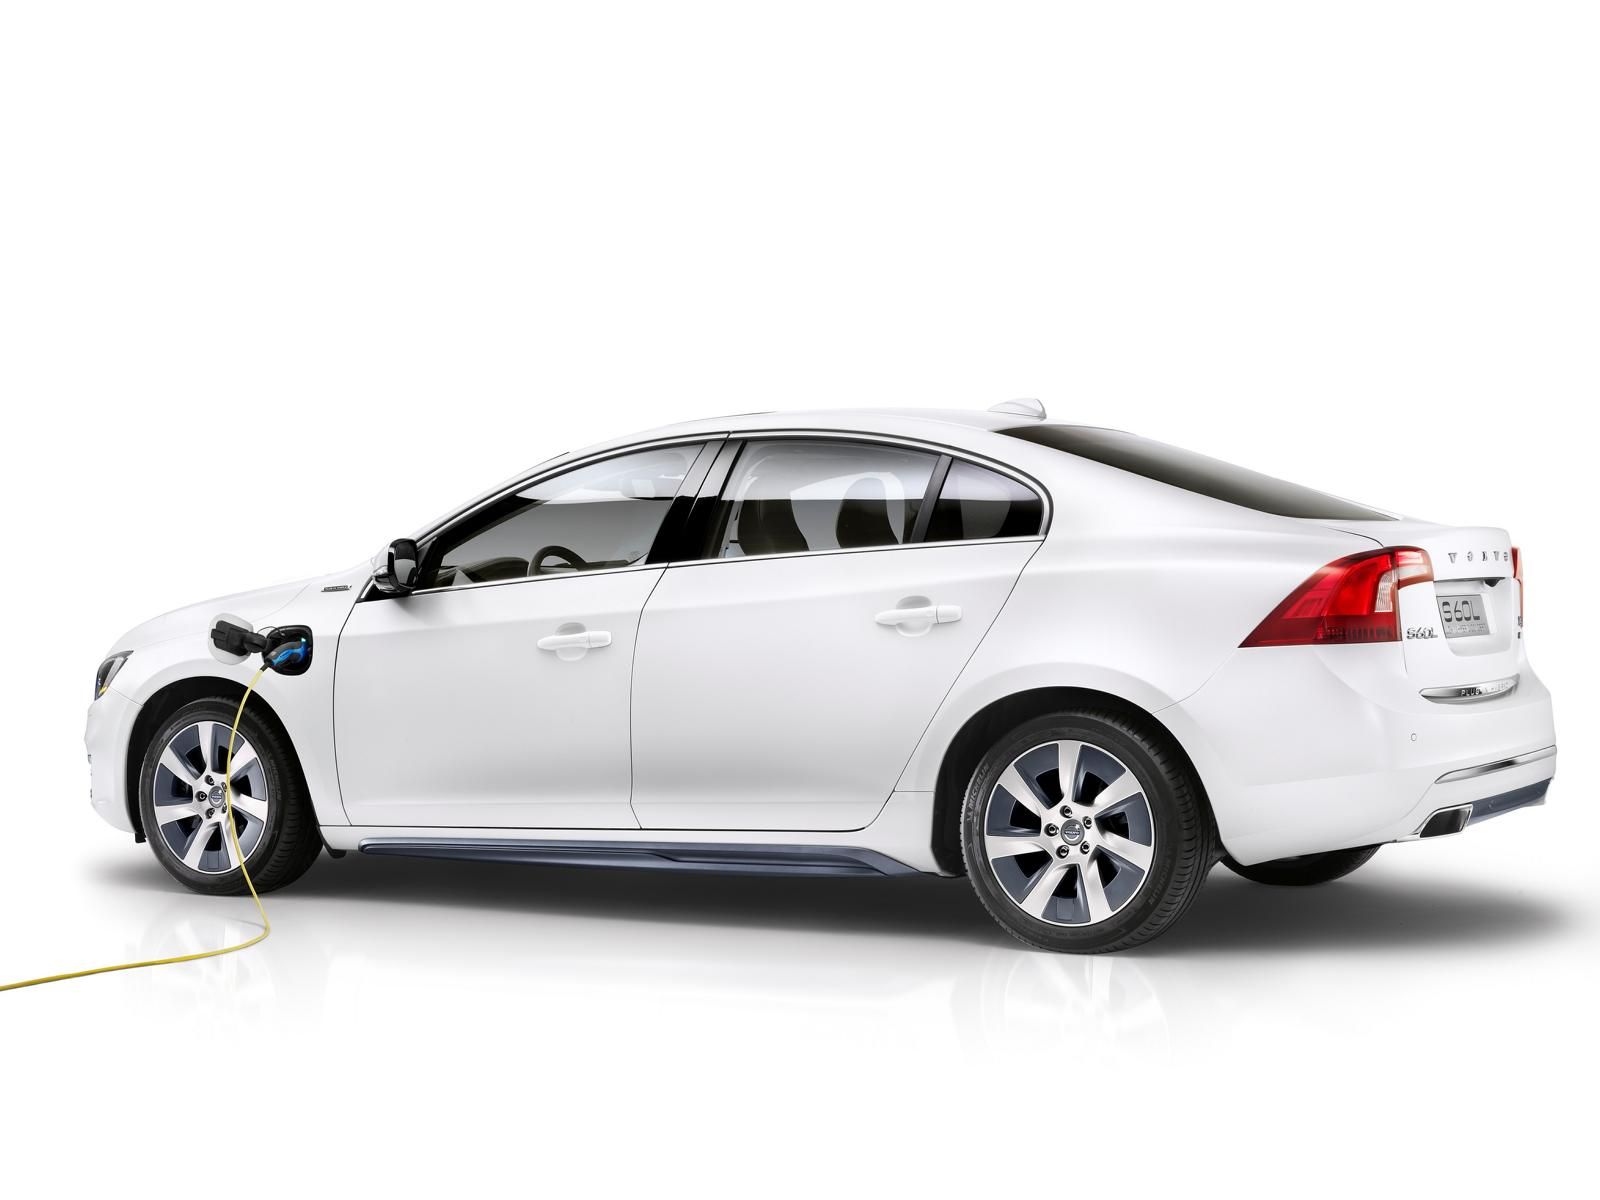 K1600 143376 Volvo S60L PPHEV Petrol Plug in Hybrid Electric Vehicle Concept Car